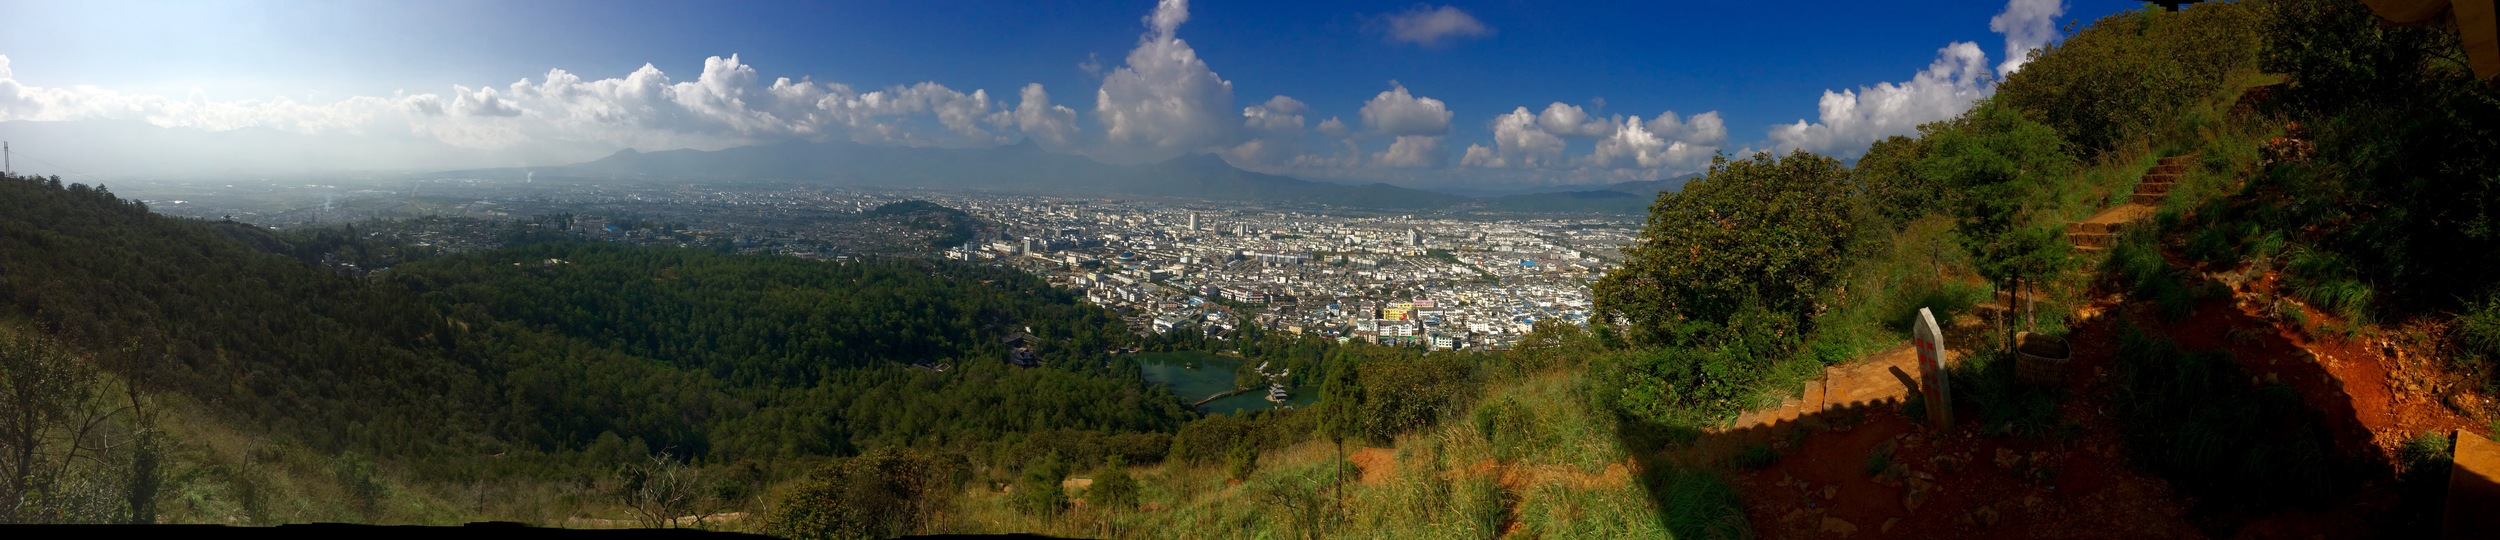 View from Elephant Hill in Liajang